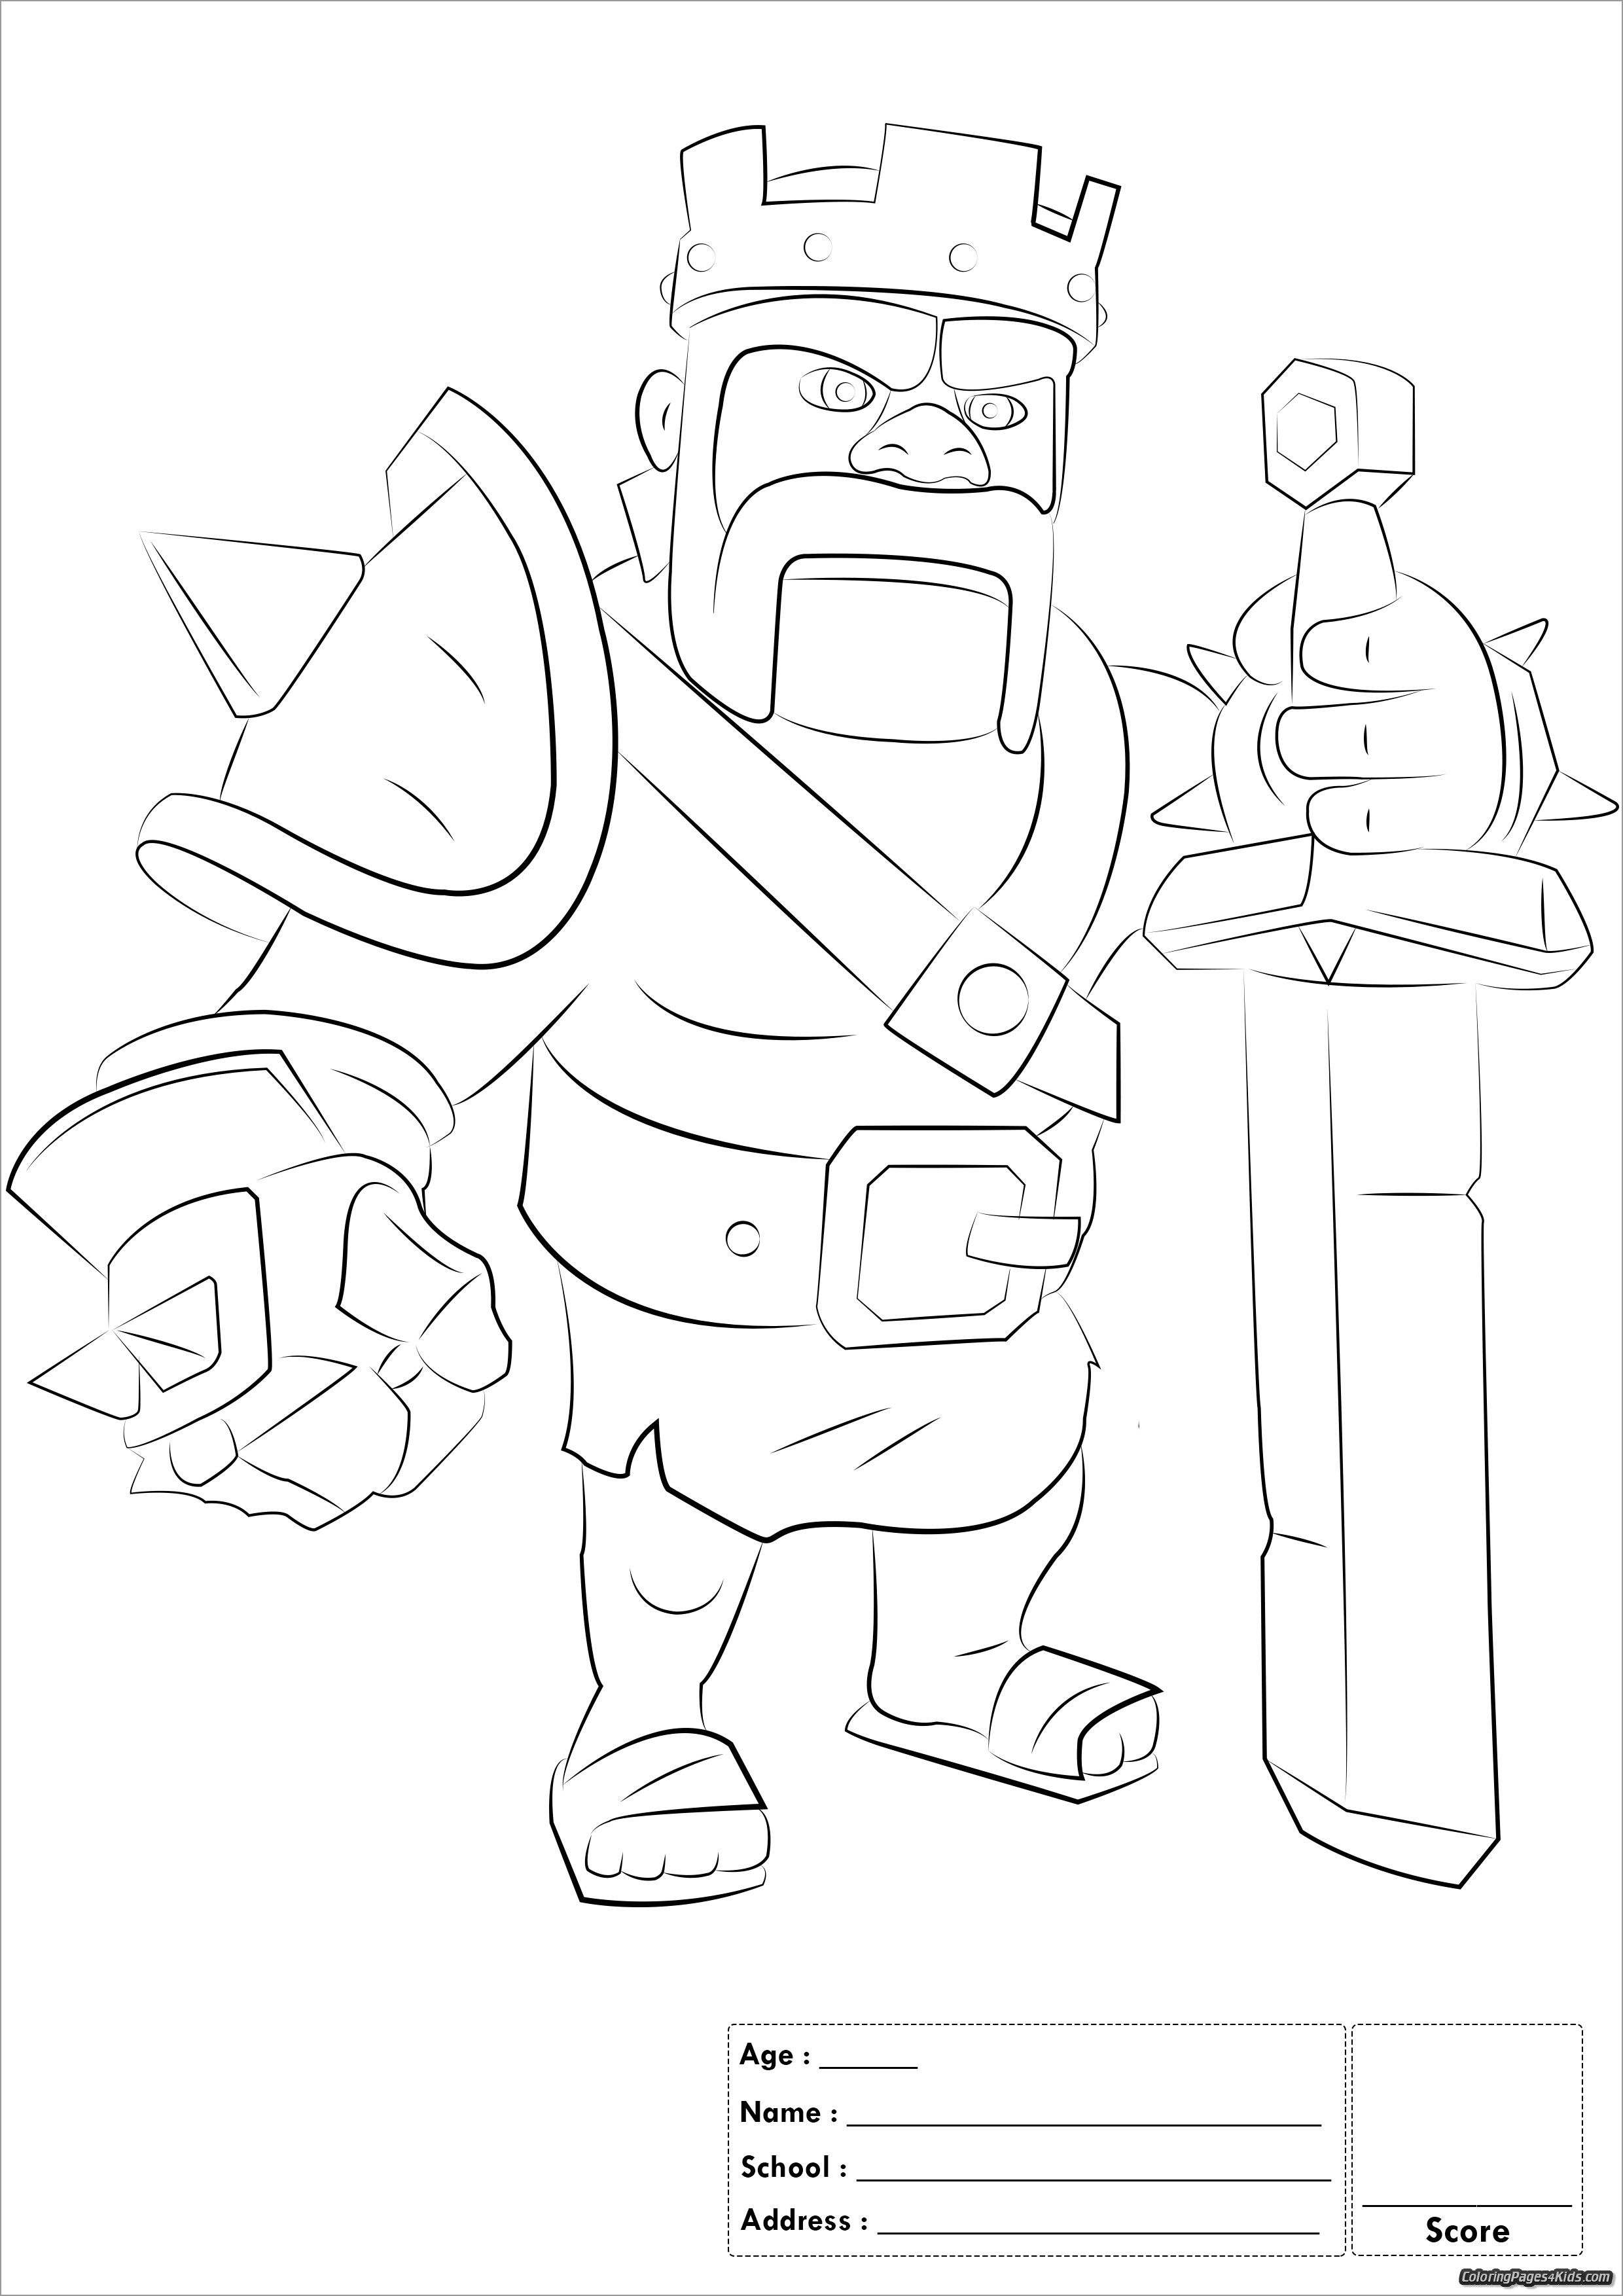 Clash Of Clans Coloring Pages Troops Clash Of Clans Dragon Coloring Page Free Printable Clash Of Clans Hog Coloring Pages Clash Of Clans Dragon Coloring Page